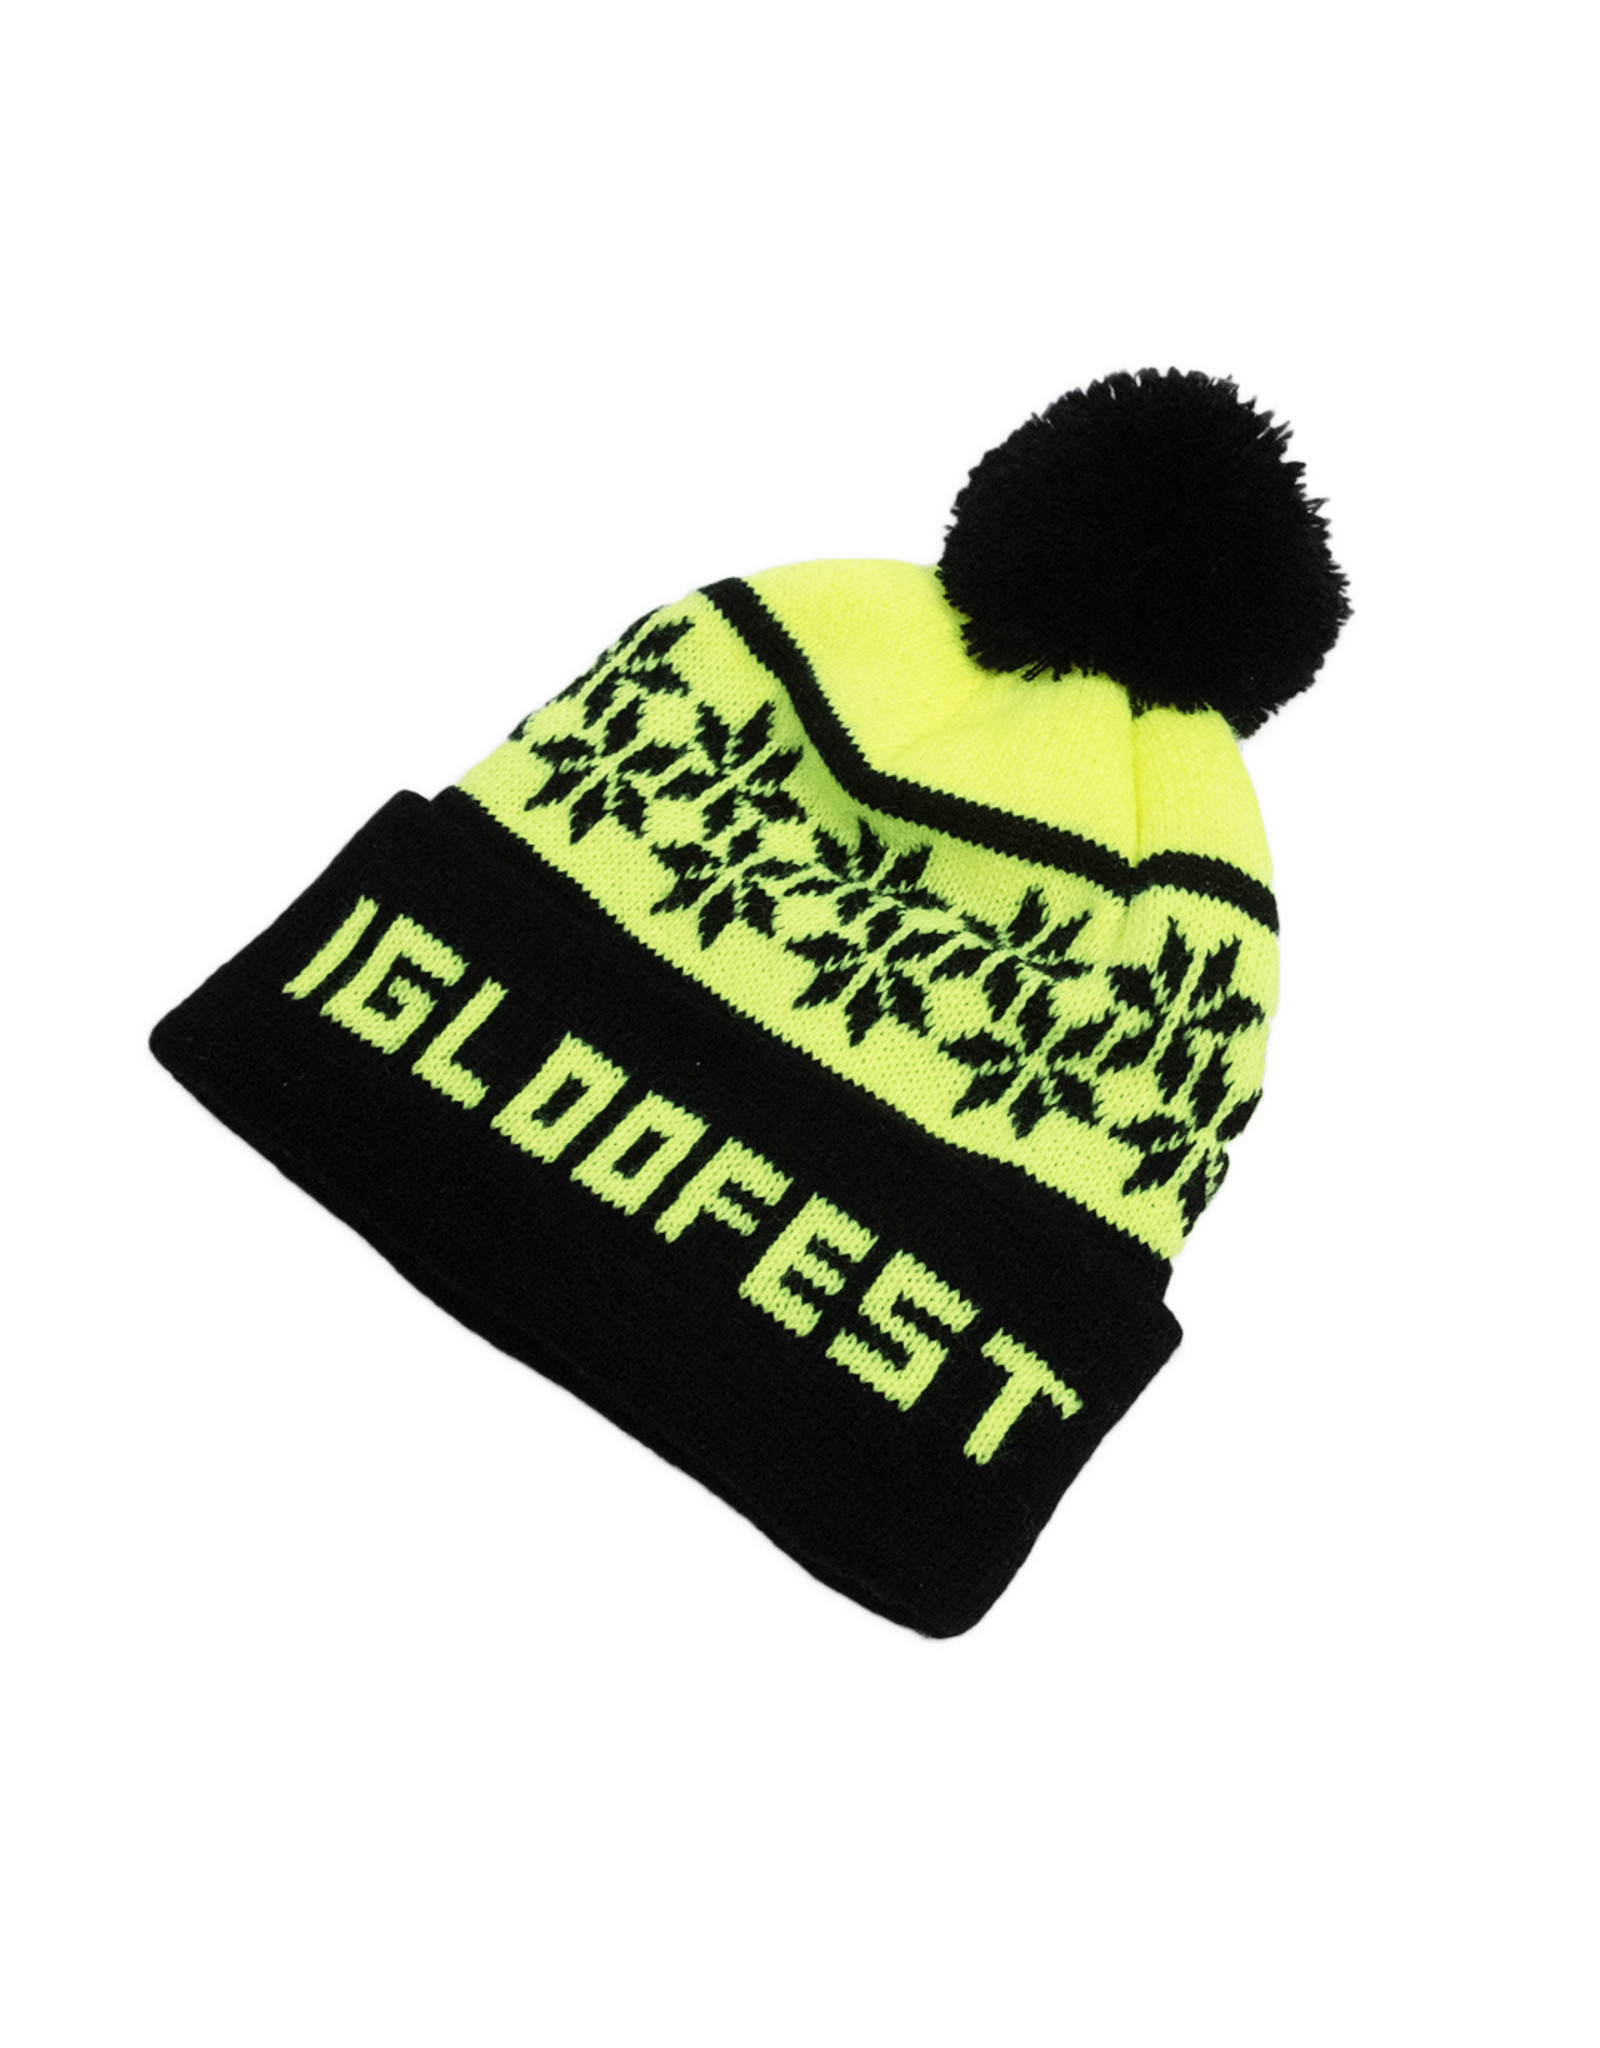 Igloofest Black and Fluo | 2017 Collection